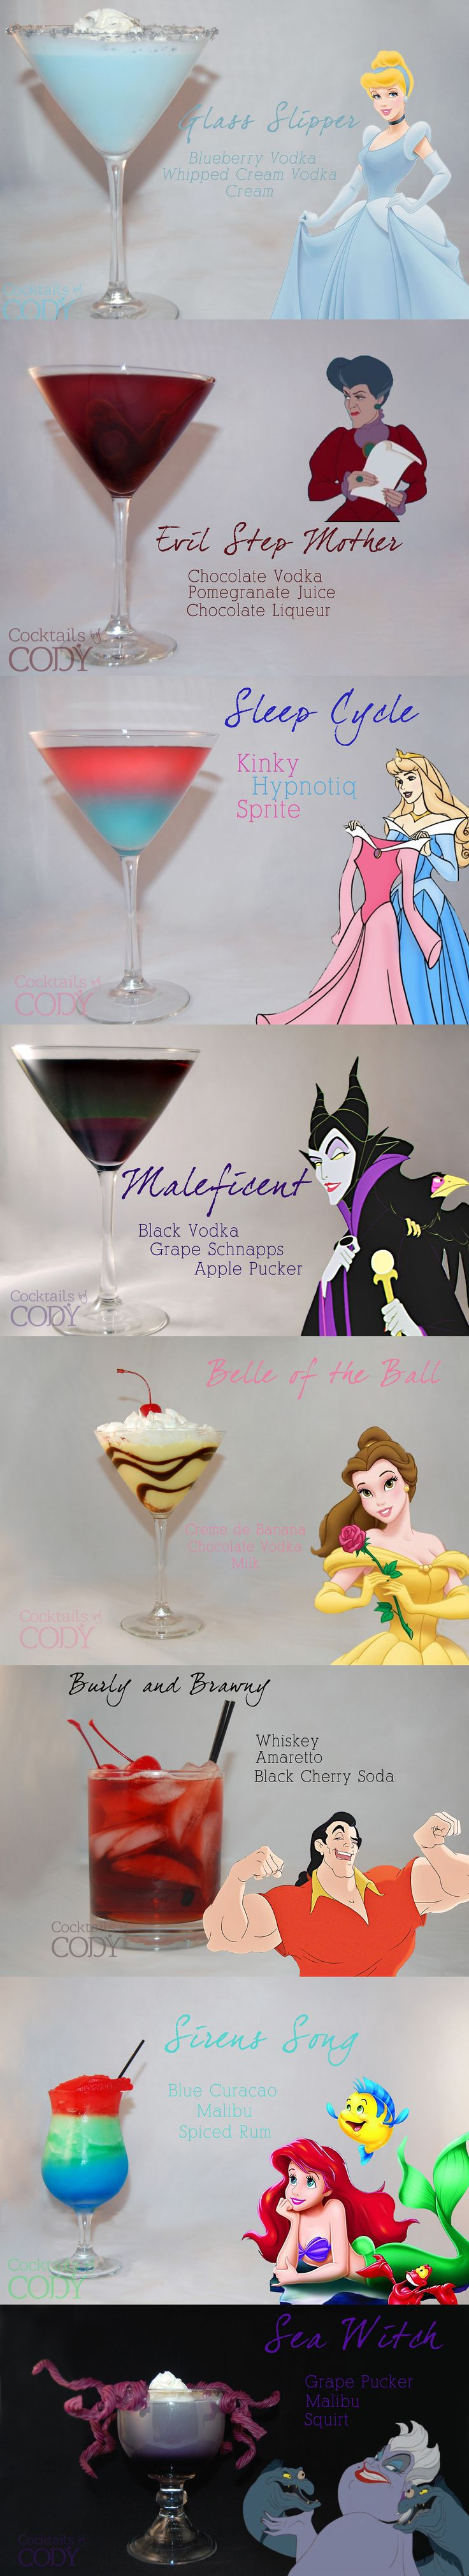 Disney Themed Cocktails from Cocktails by Cody - https://www.facebook.com/Codys.cocktails